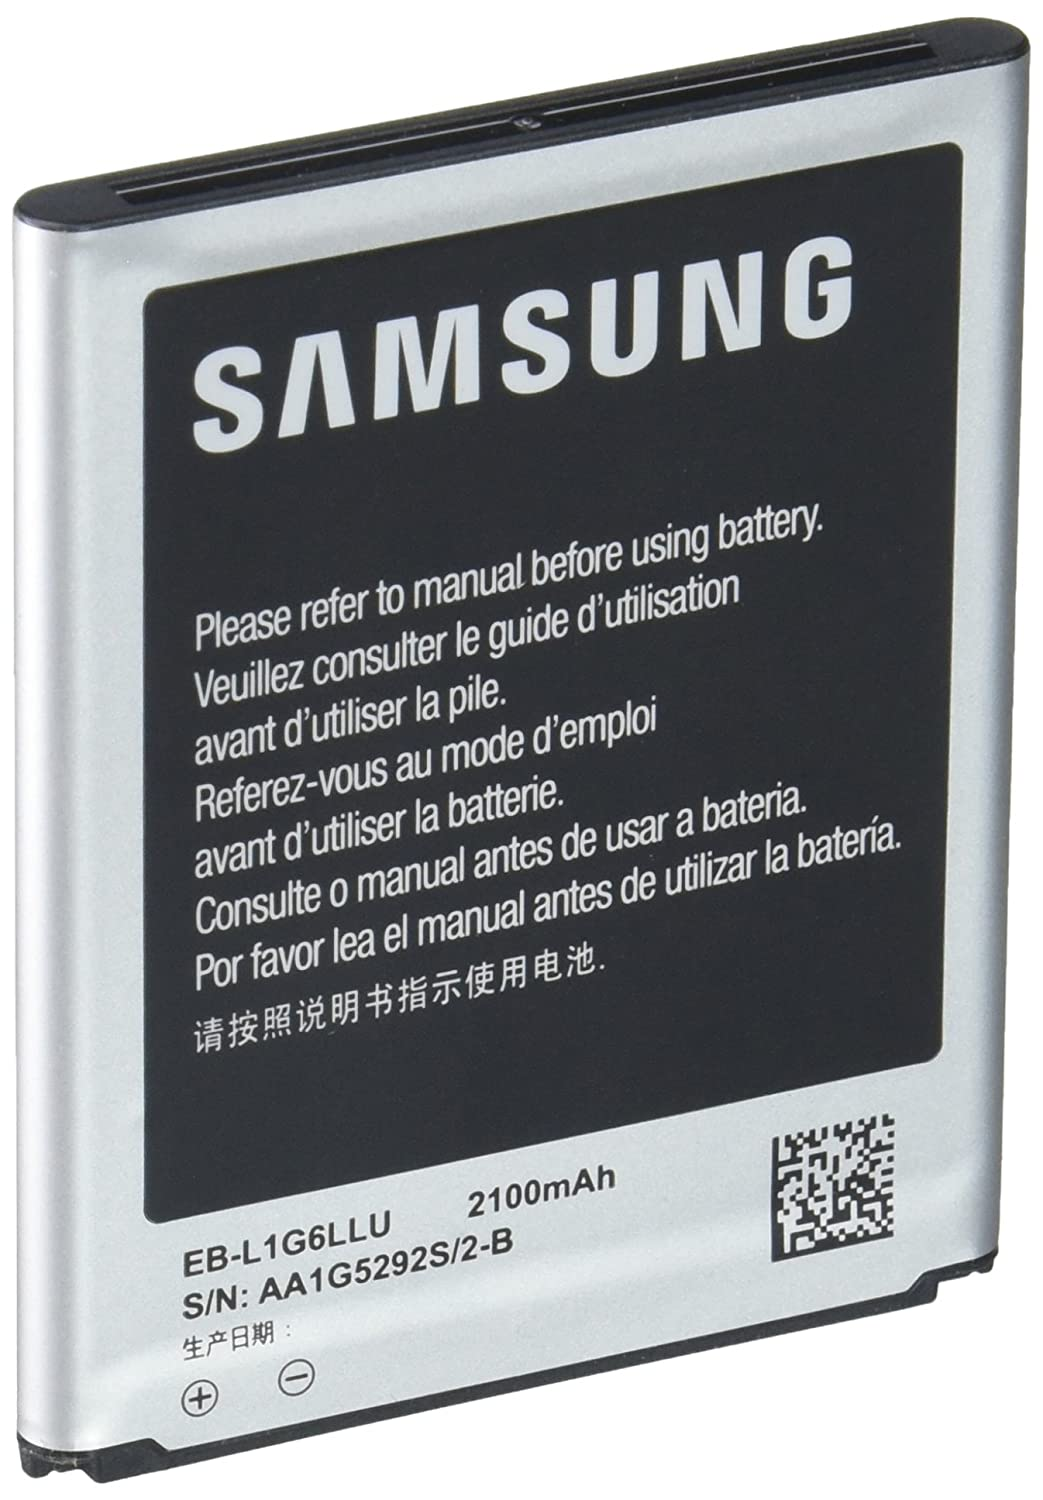 Samsung EB-L1G6LLA Original Genuine OEM Samsung Galaxy S3 2100mAh Spare Replacement Li-ion Battery with NFC Technology for All Carriers, Non-Retail Packaging, Silver (Discontinued by Manufacturer) EB-L1G6LLU